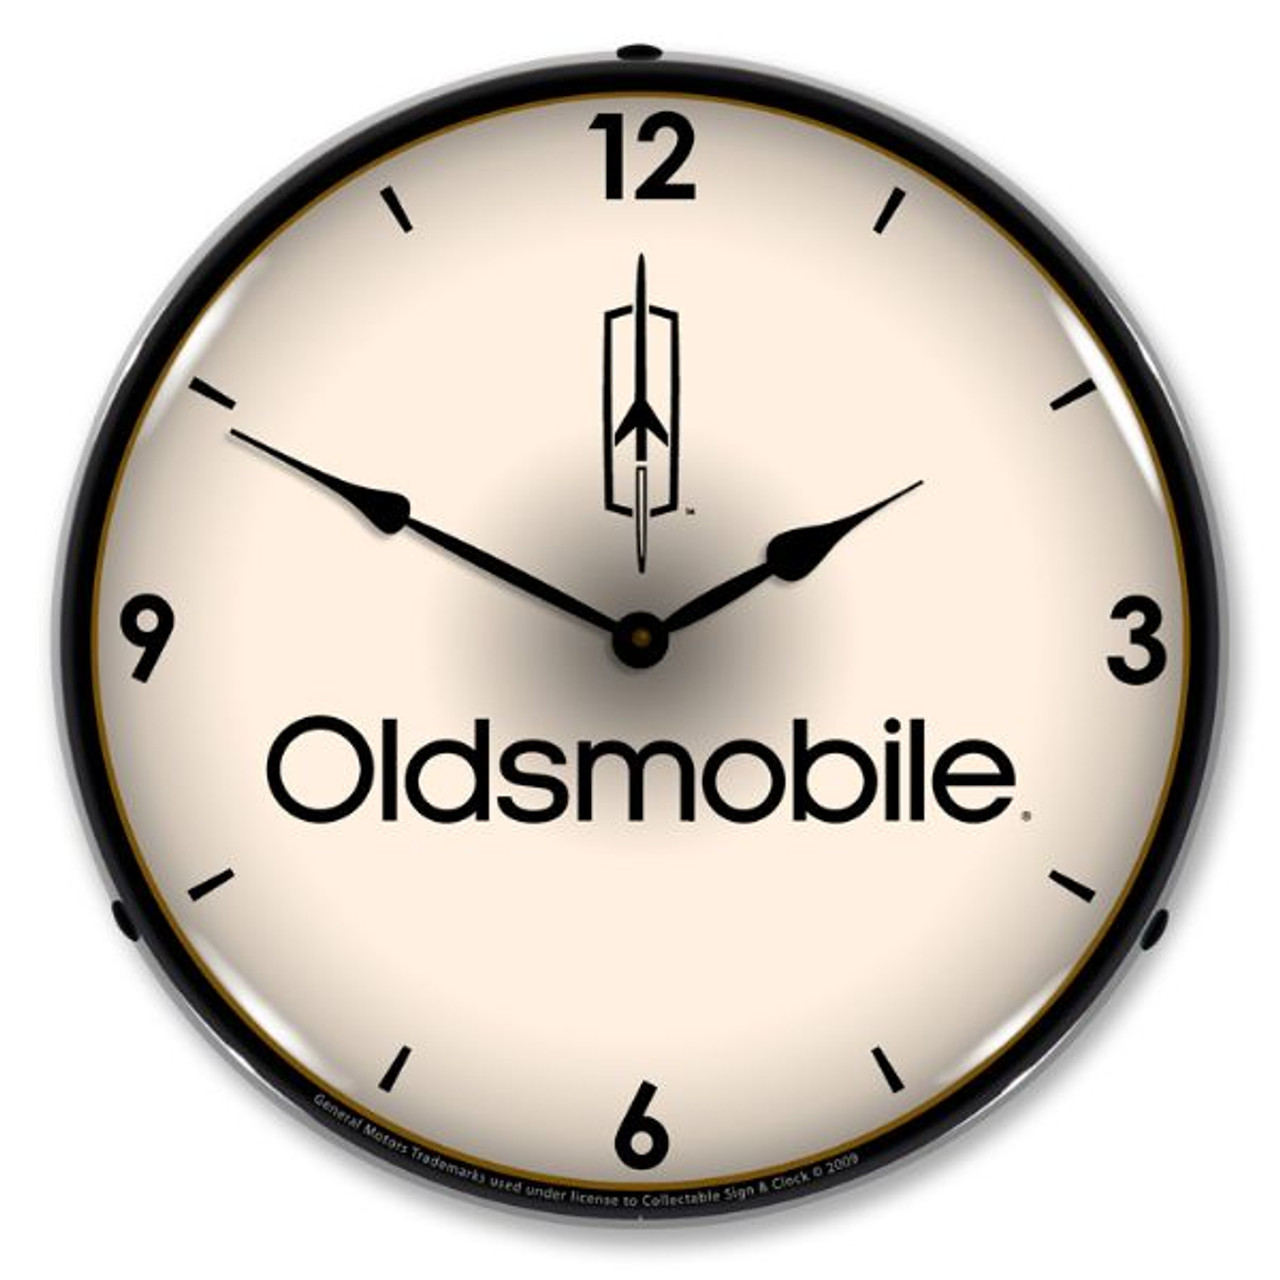 Oldsmobile Lighted Wall Clock